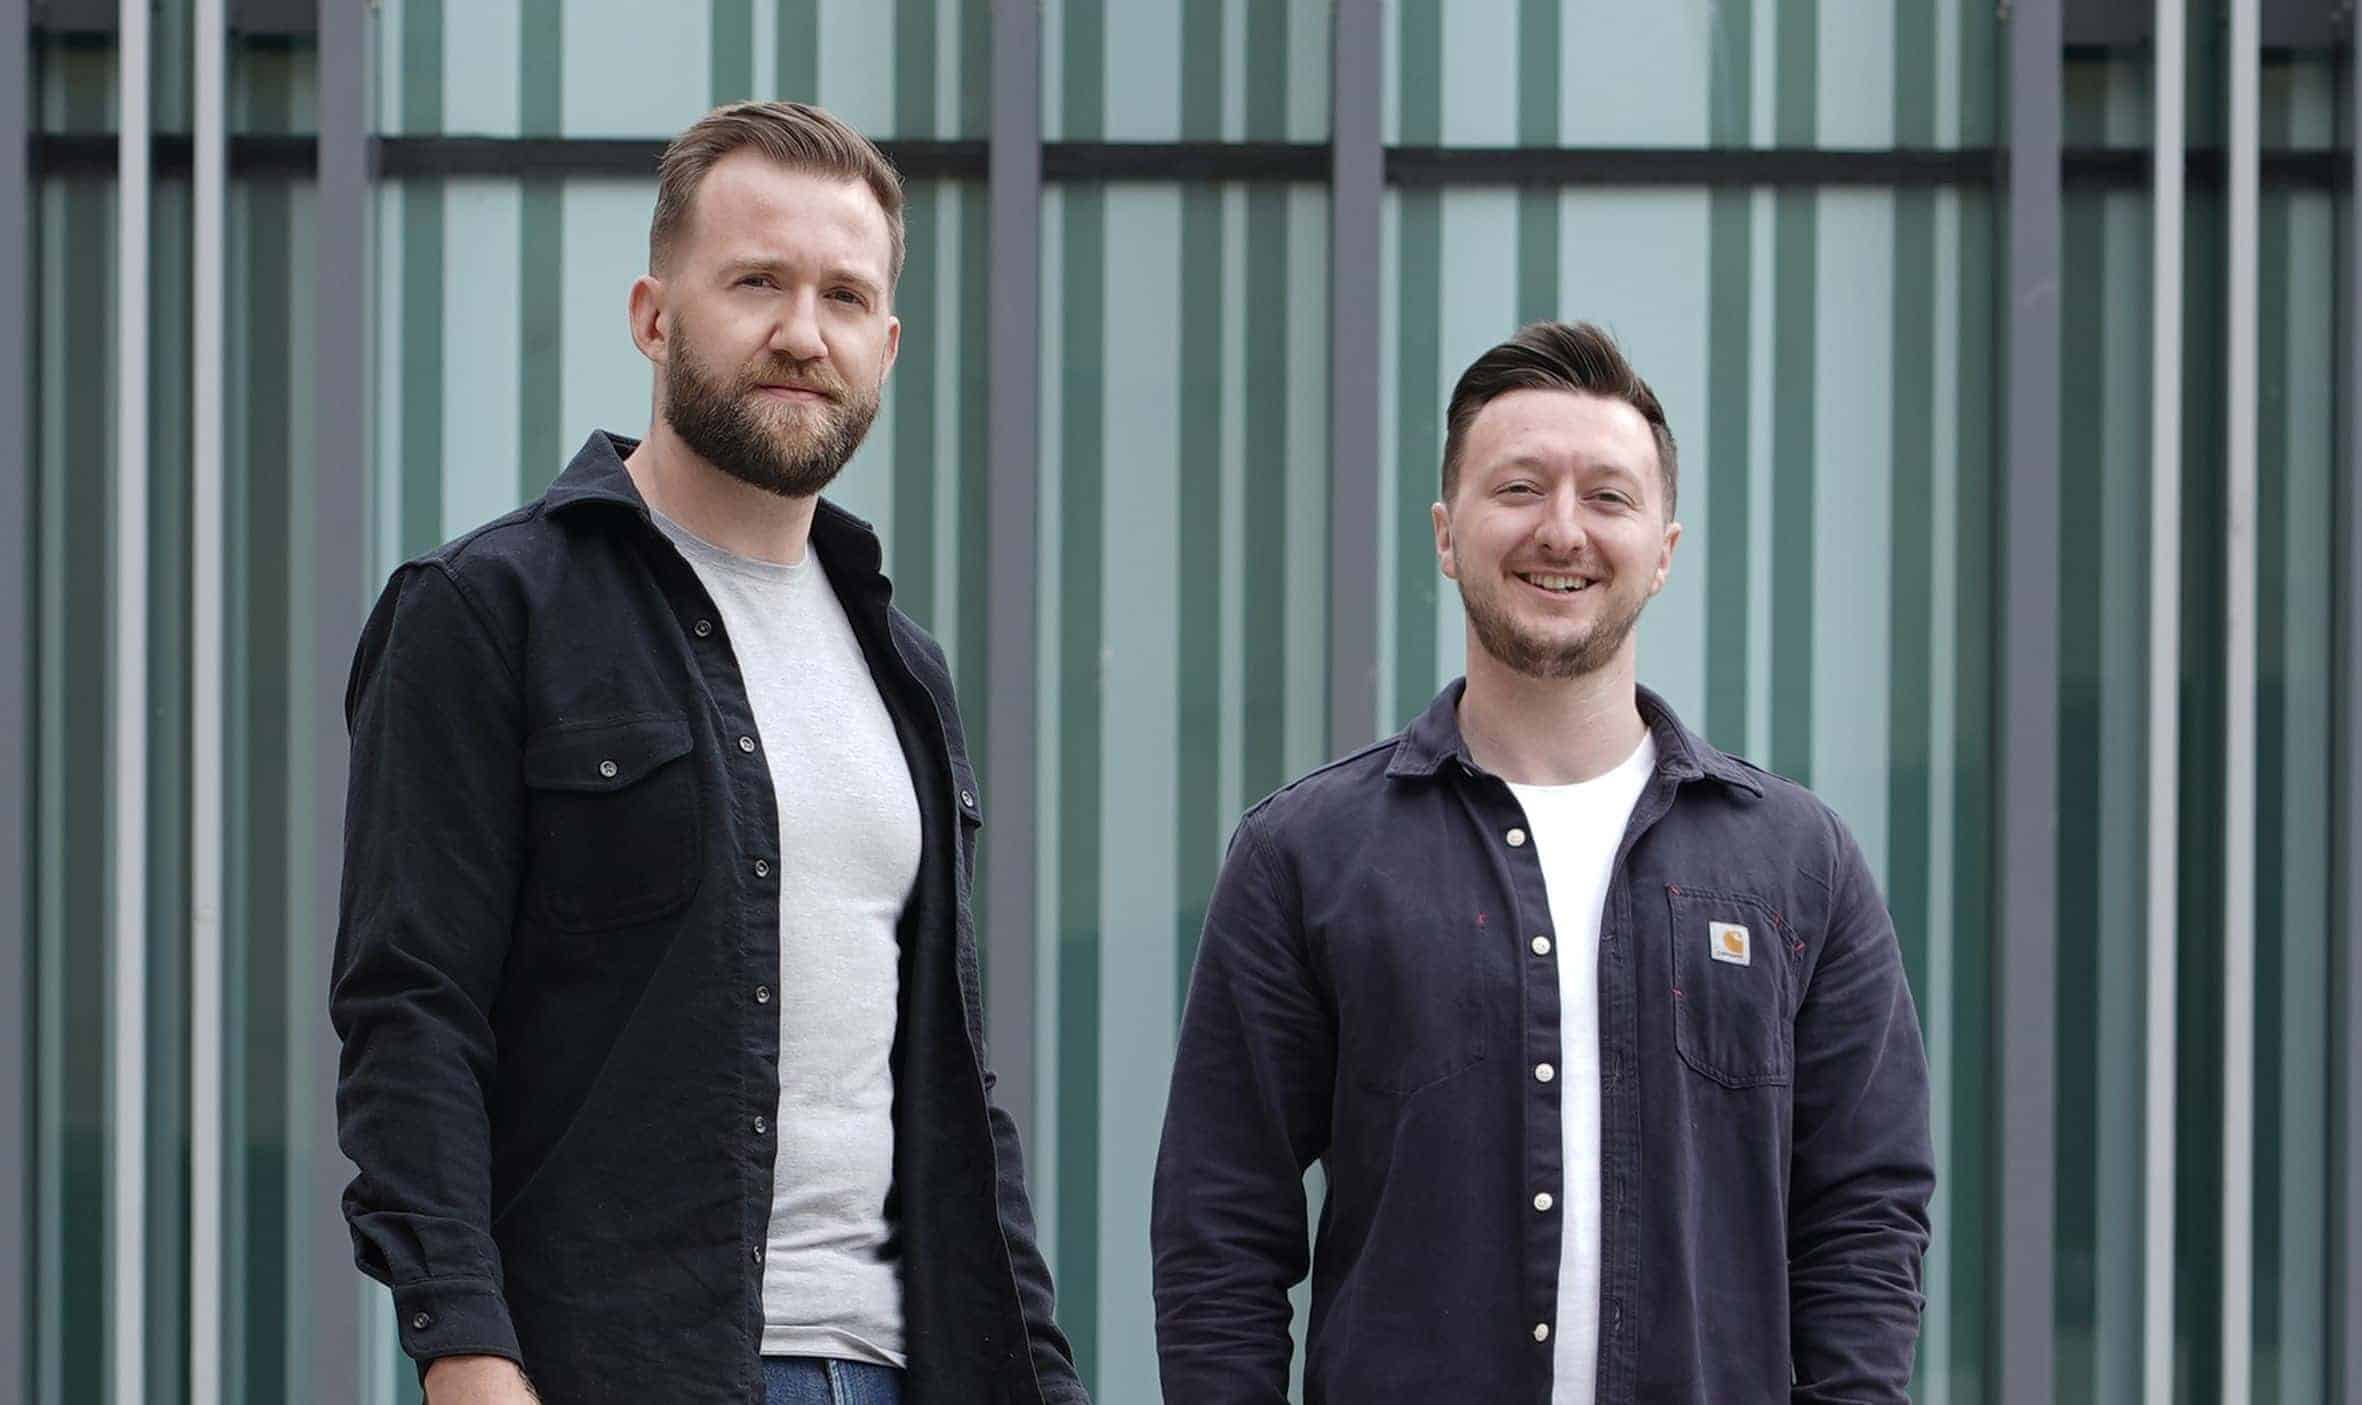 Gigged secures £600K Pre-Seed investment led by Techstart Ventures